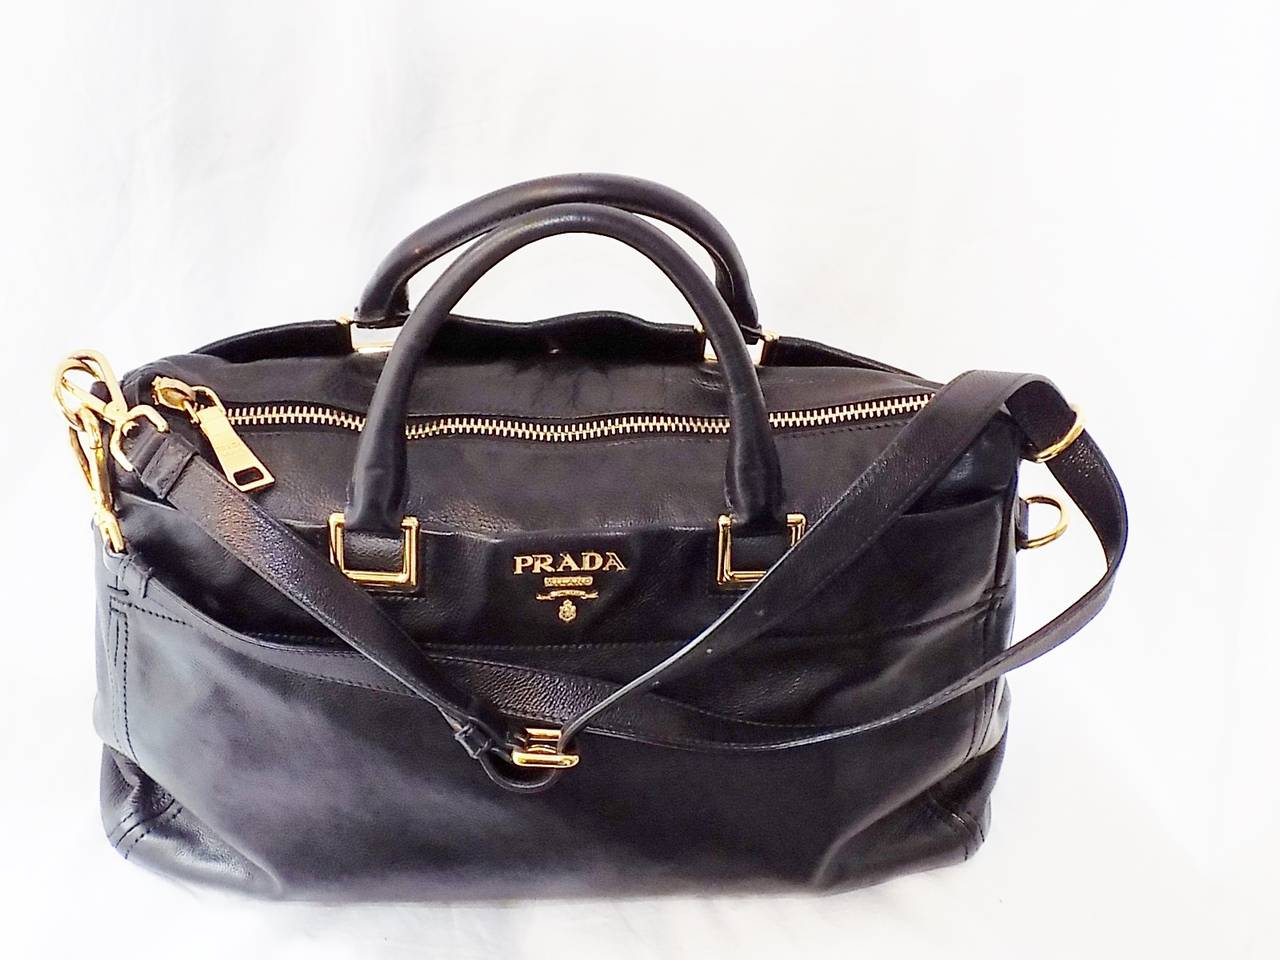 Prada Bag Soft Leather